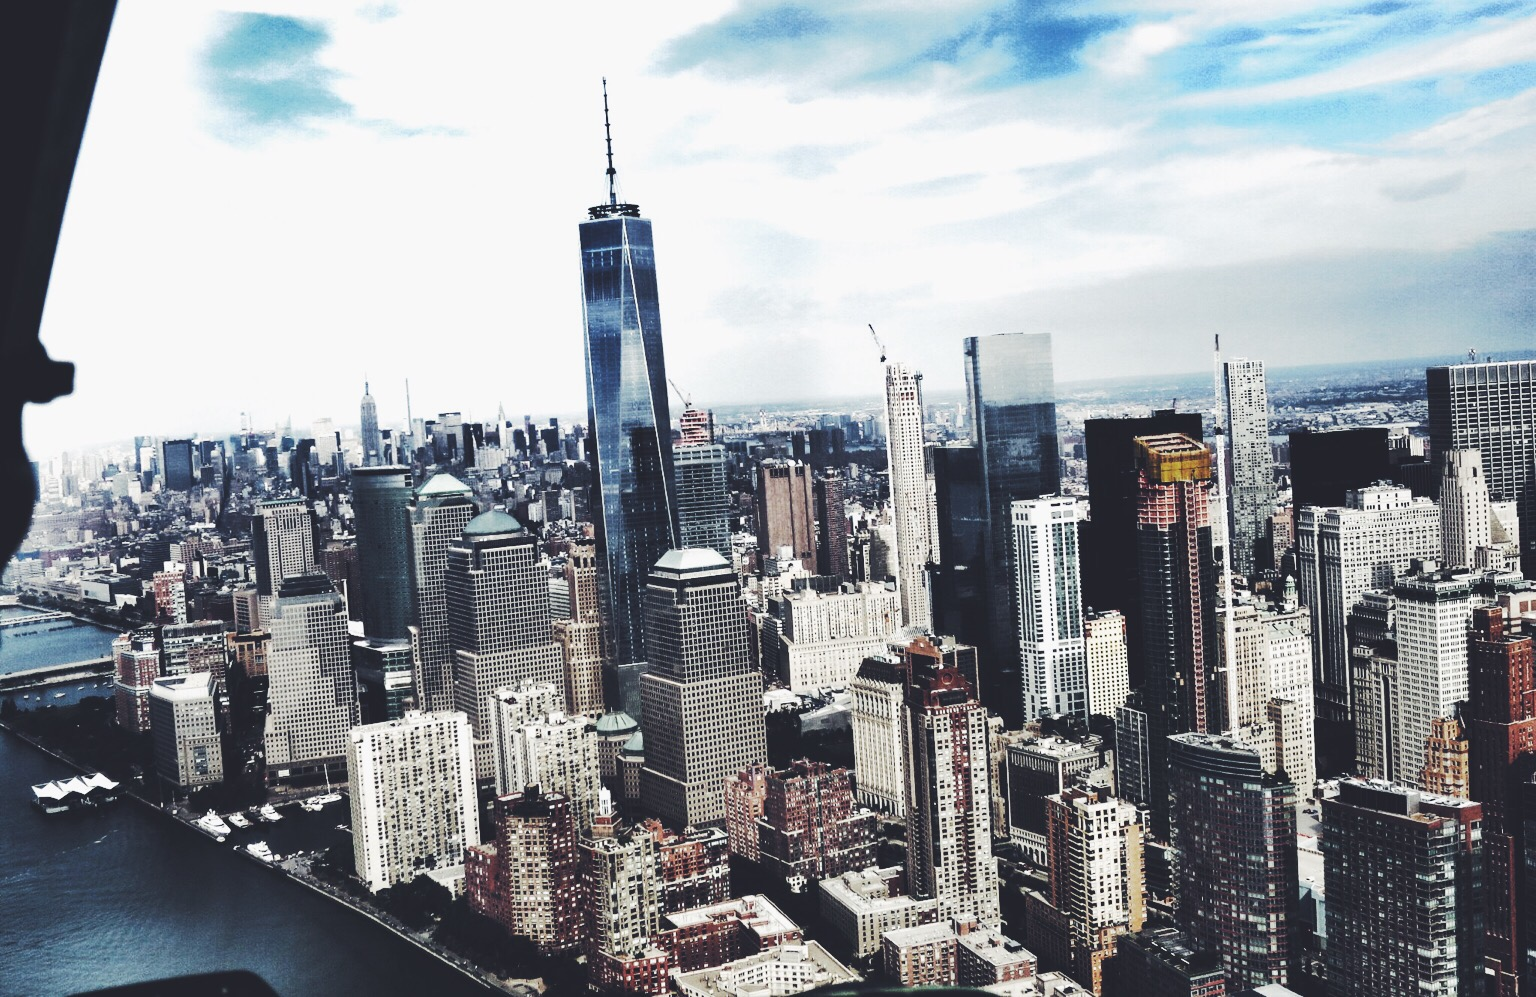 View over New York City from the helicopter